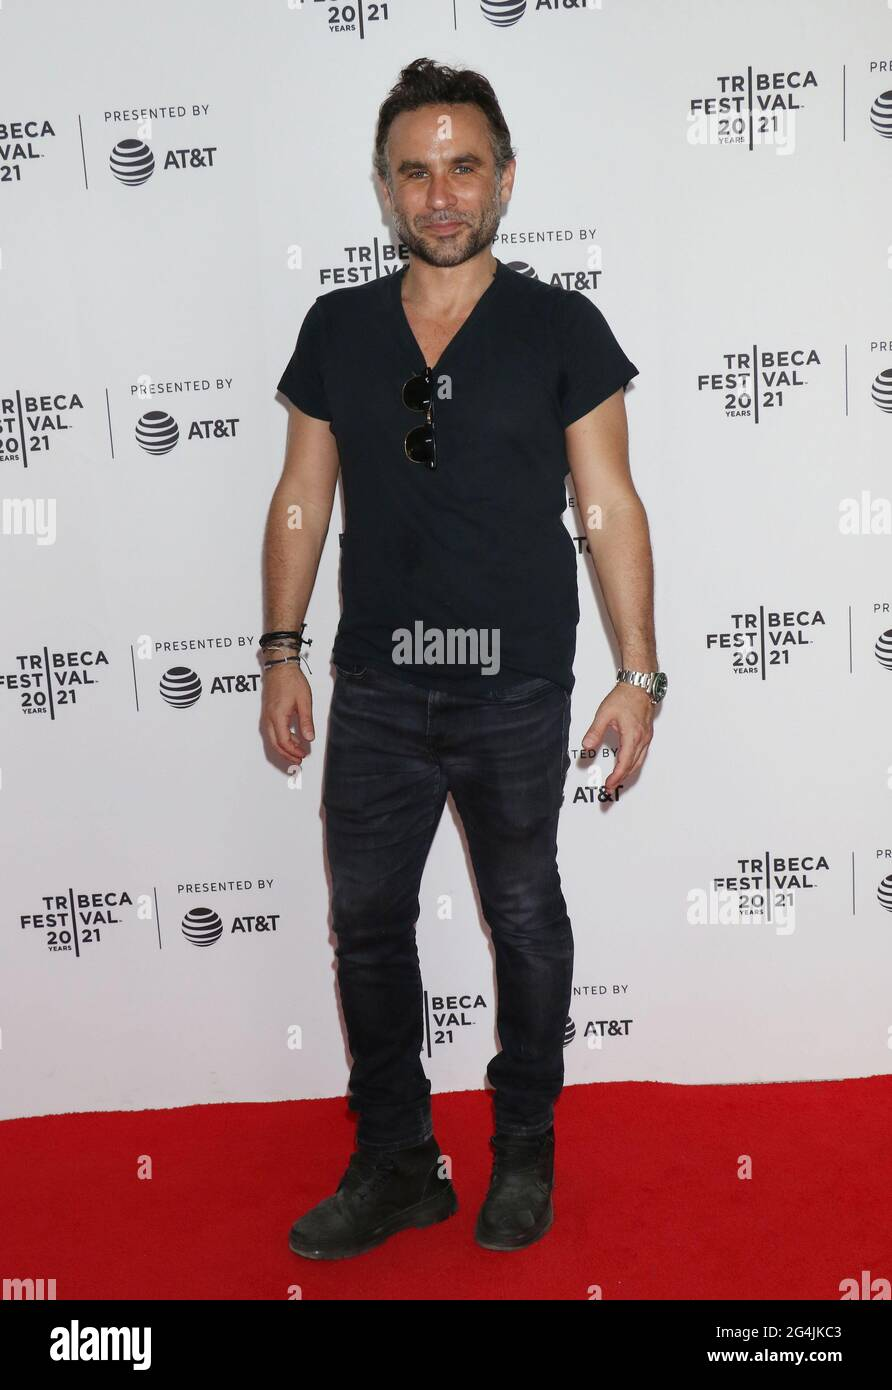 New York, NY, USA. 21st June, 2021. Austin Stark, at the 2021 Tribeca Film Festival premiere of The God Committee at Brooklyn Commons Metrotech in New York City on June 20, 2021 Credit: Rw Media Punch/Alamy Live News Stock Photo